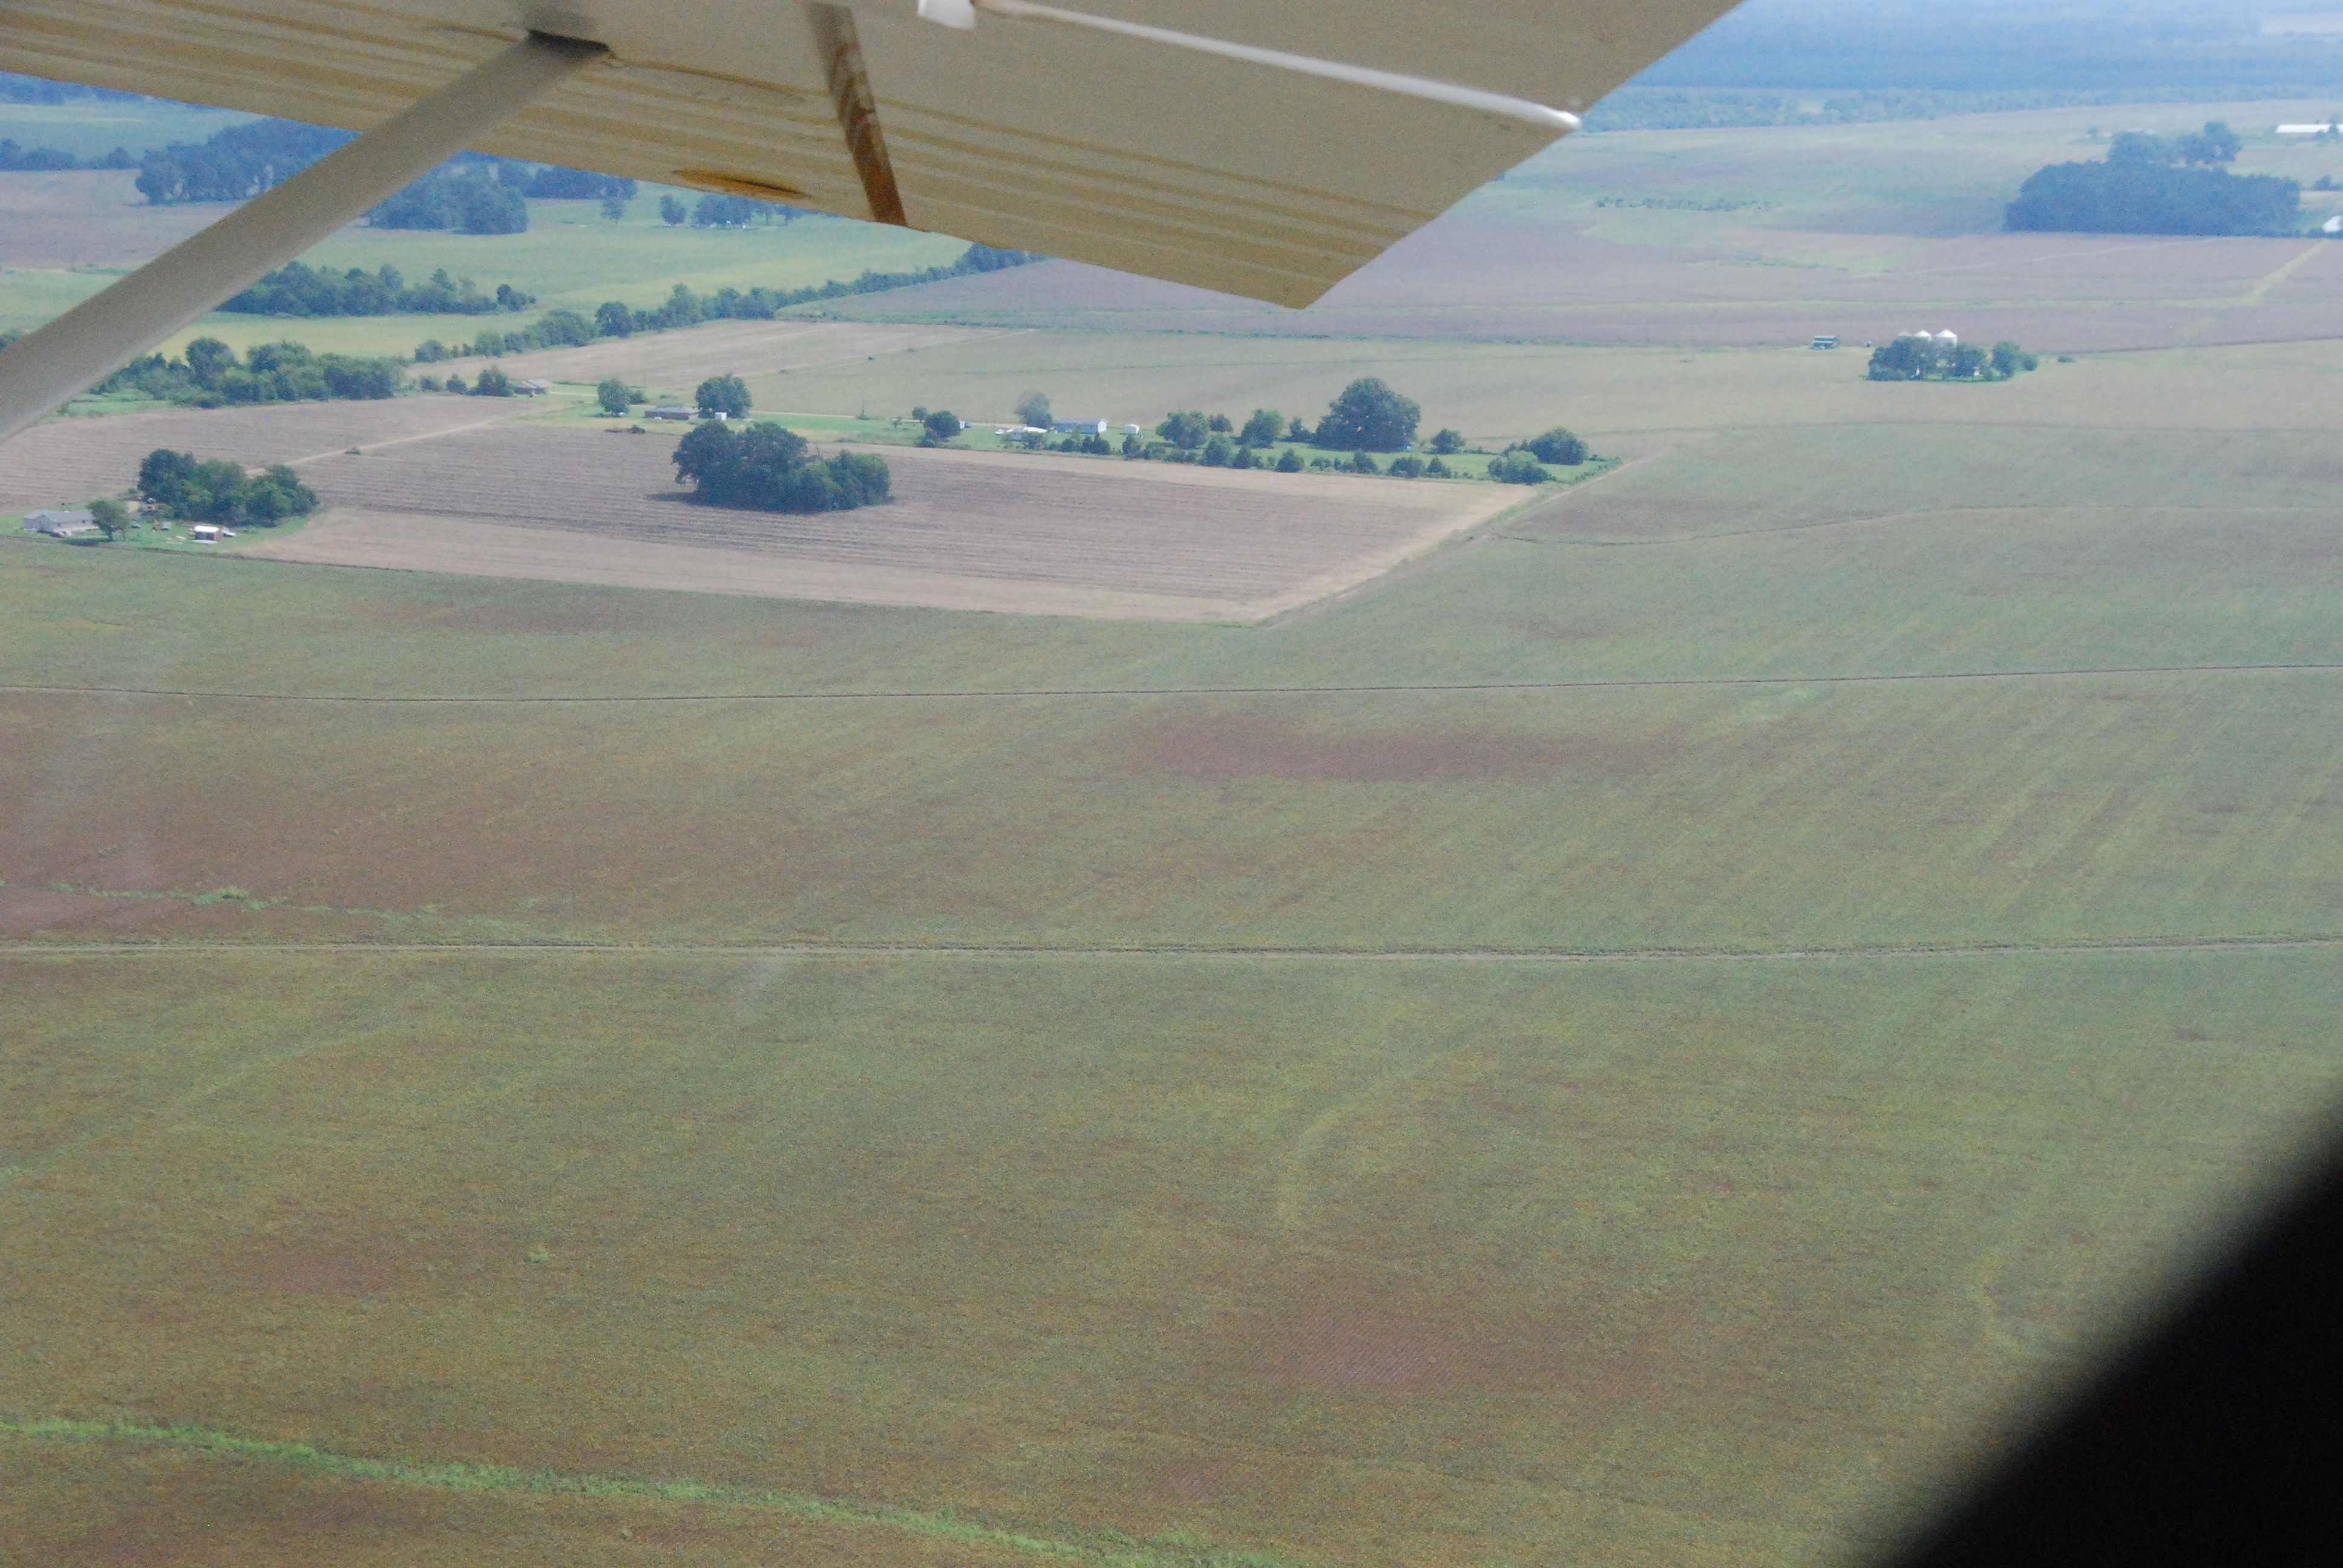 Aerial view of soybean field with patches of soybean rust.